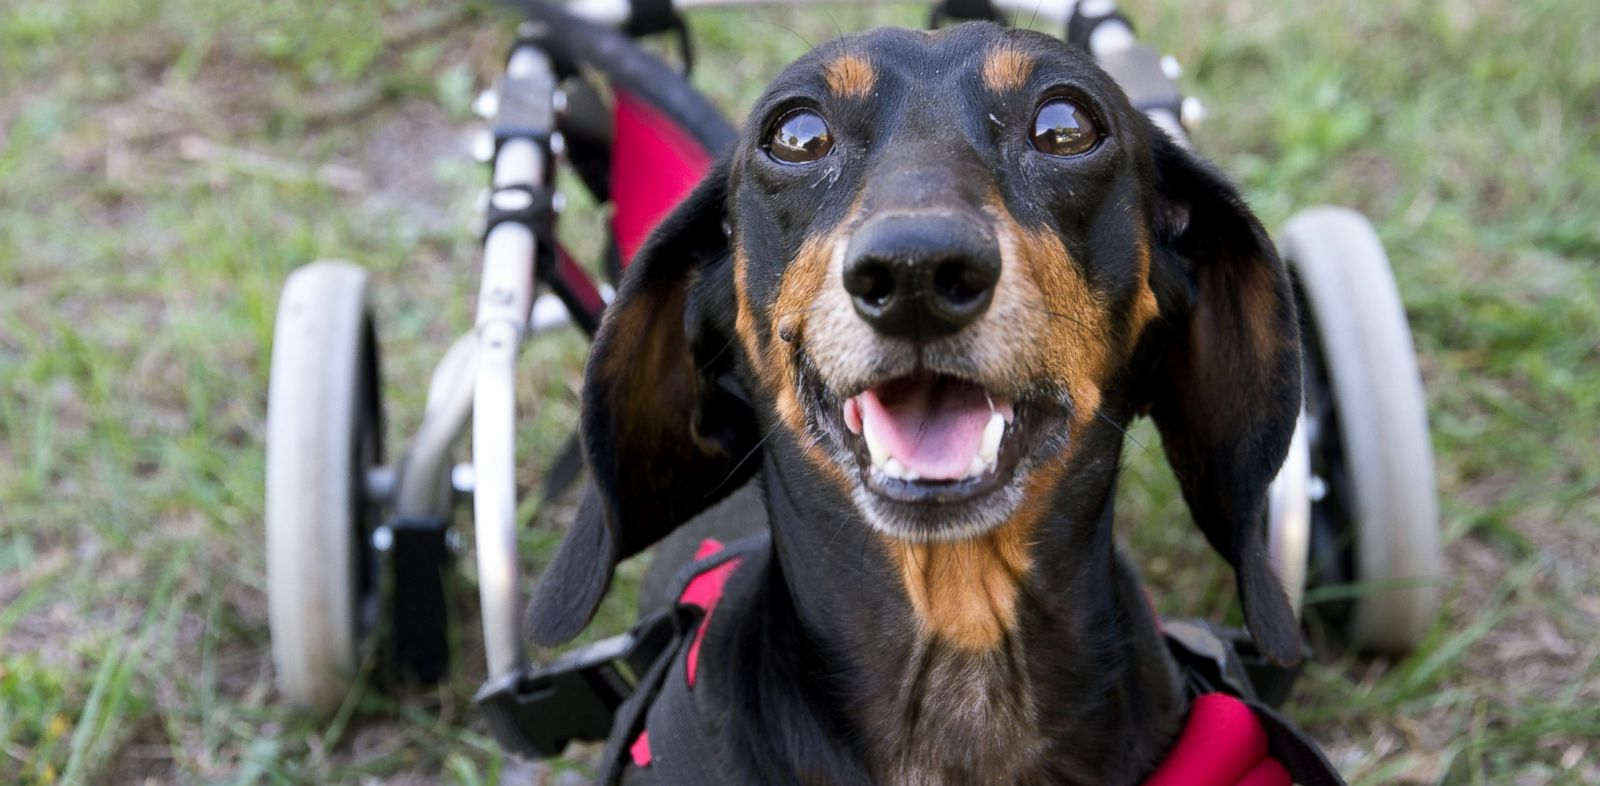 PHOTO: Willie, a partially paralyzed dachshund abandoned by the side of an animal shelter in Tampa, Fla., was adopted by a family on Sunday and is learning to walk using a special wheelchair for dogs.